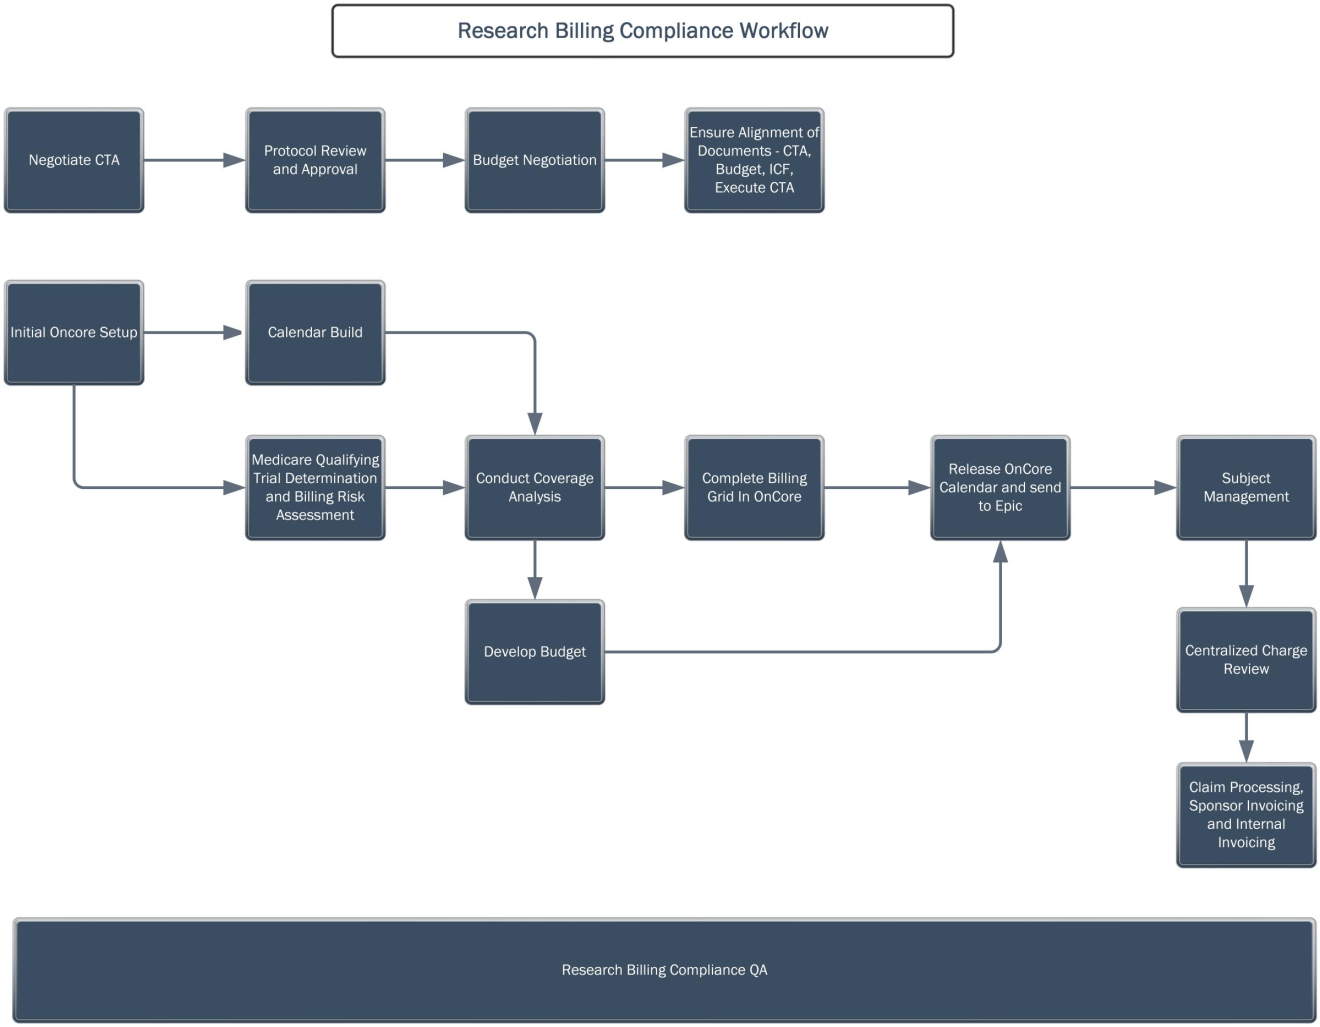 Research Billing Compliance flowchart